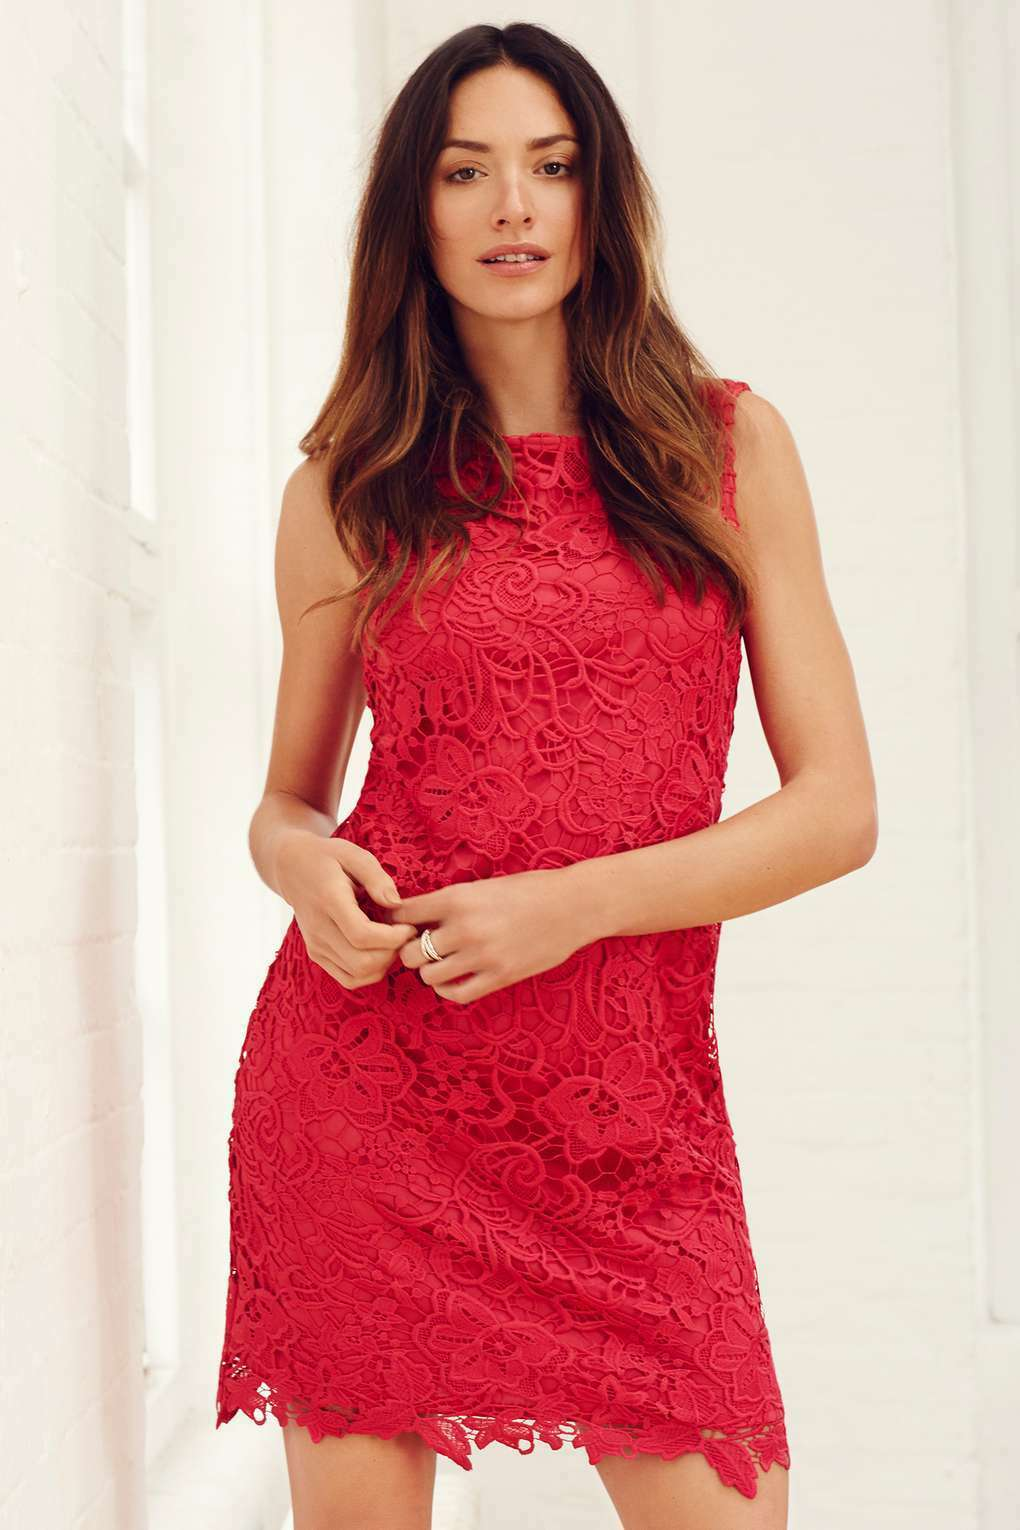 BNWT Stunning Pink Floral  Lace Dress 12